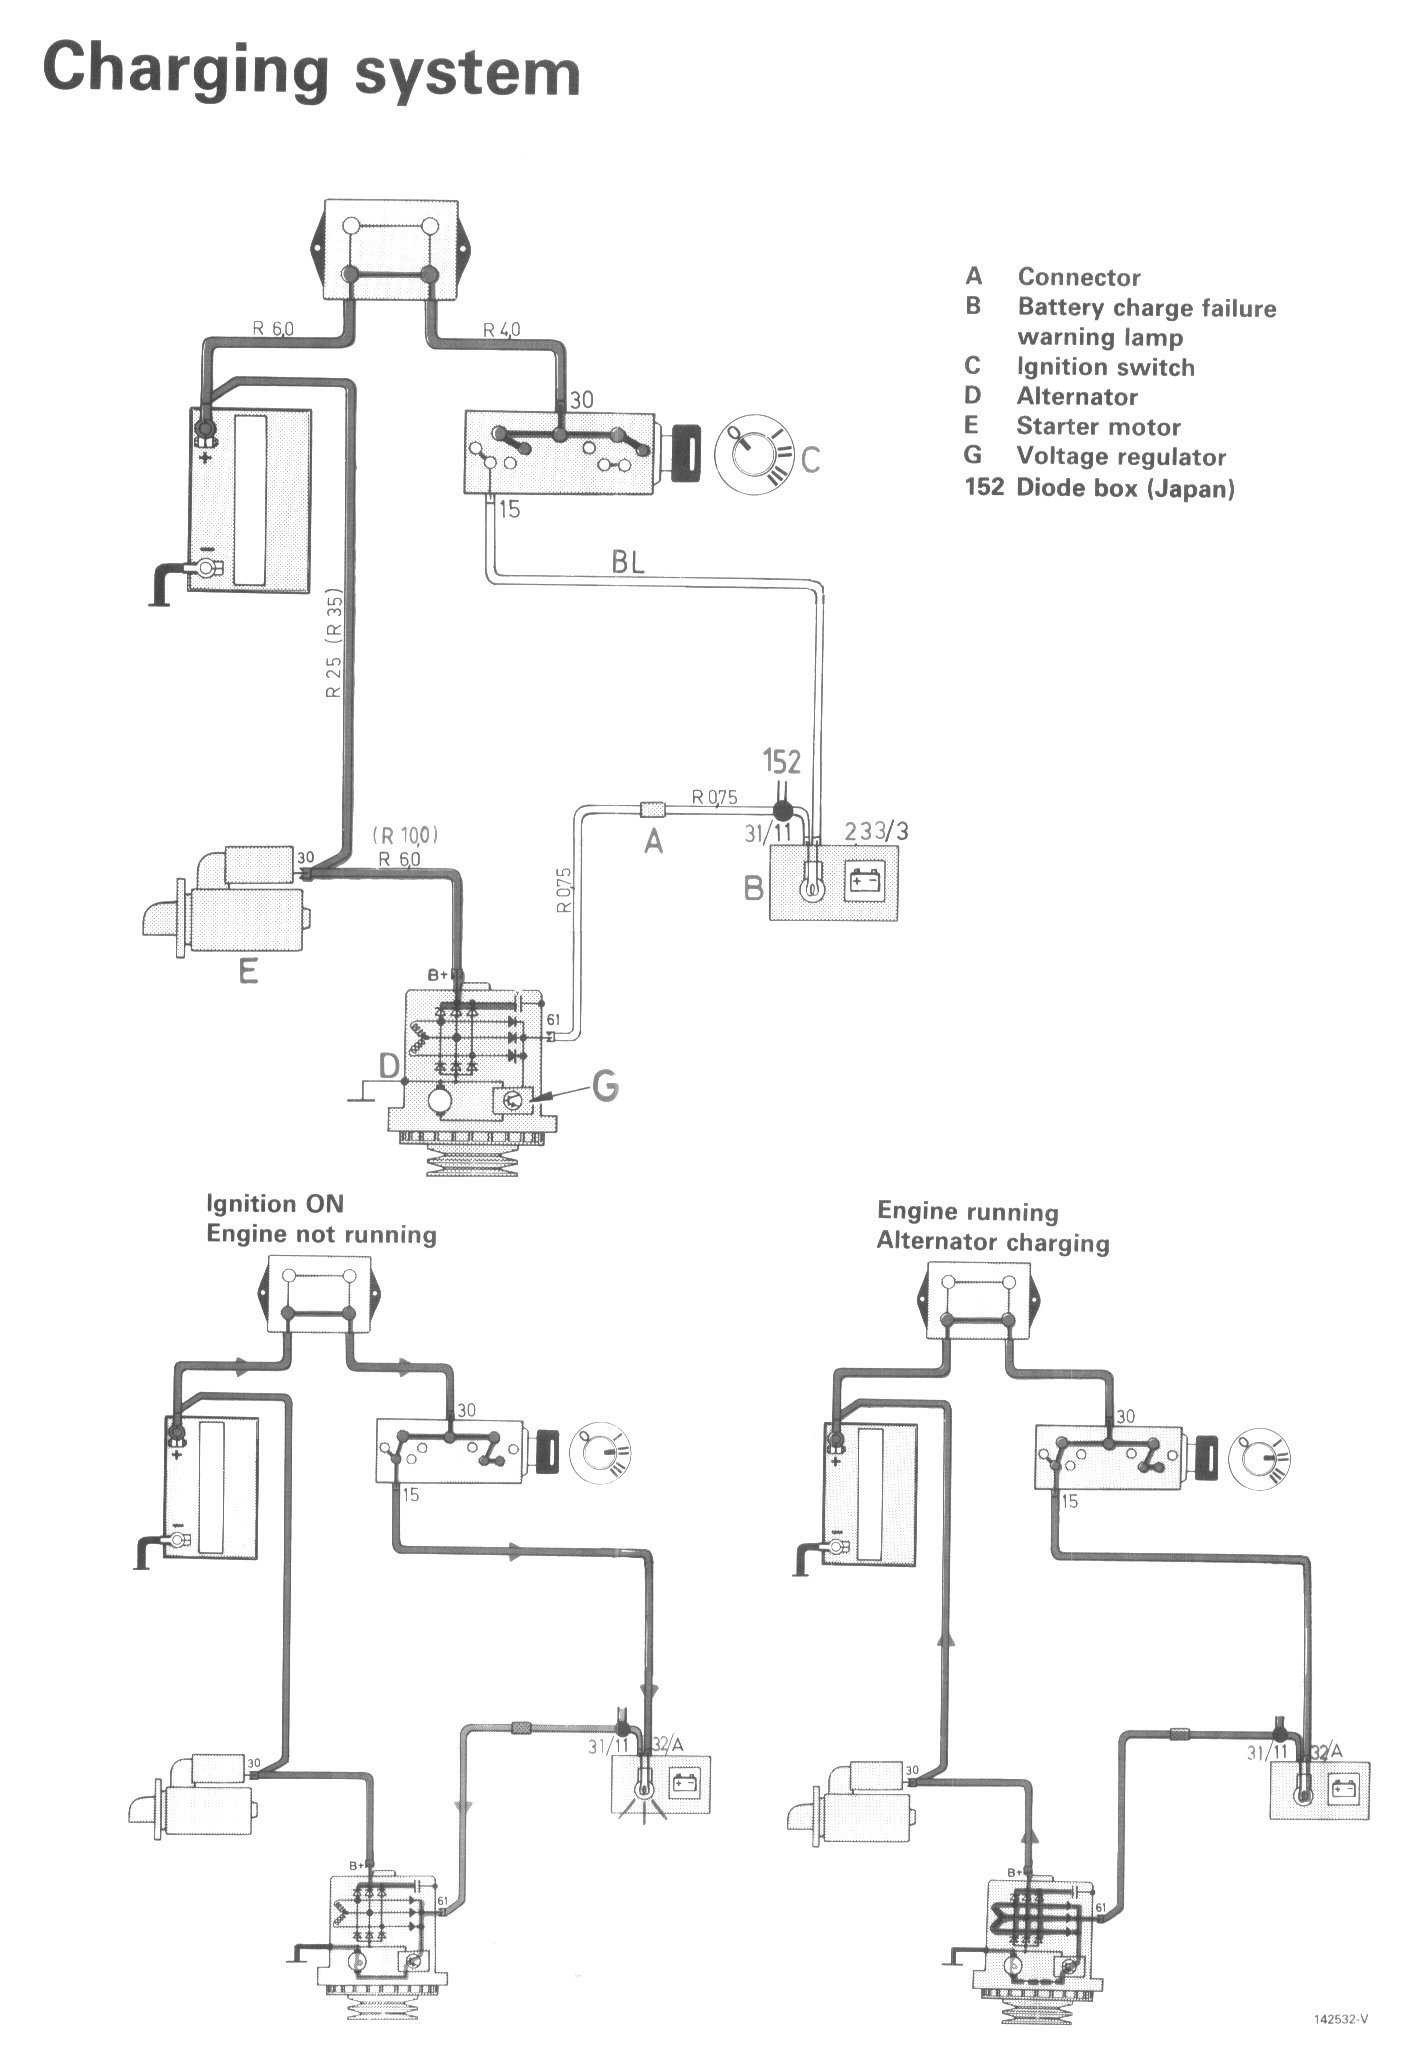 1986 volvo wiring diagram - electric heater wiring diagrams for wiring  diagram schematics  wiring diagram schematics